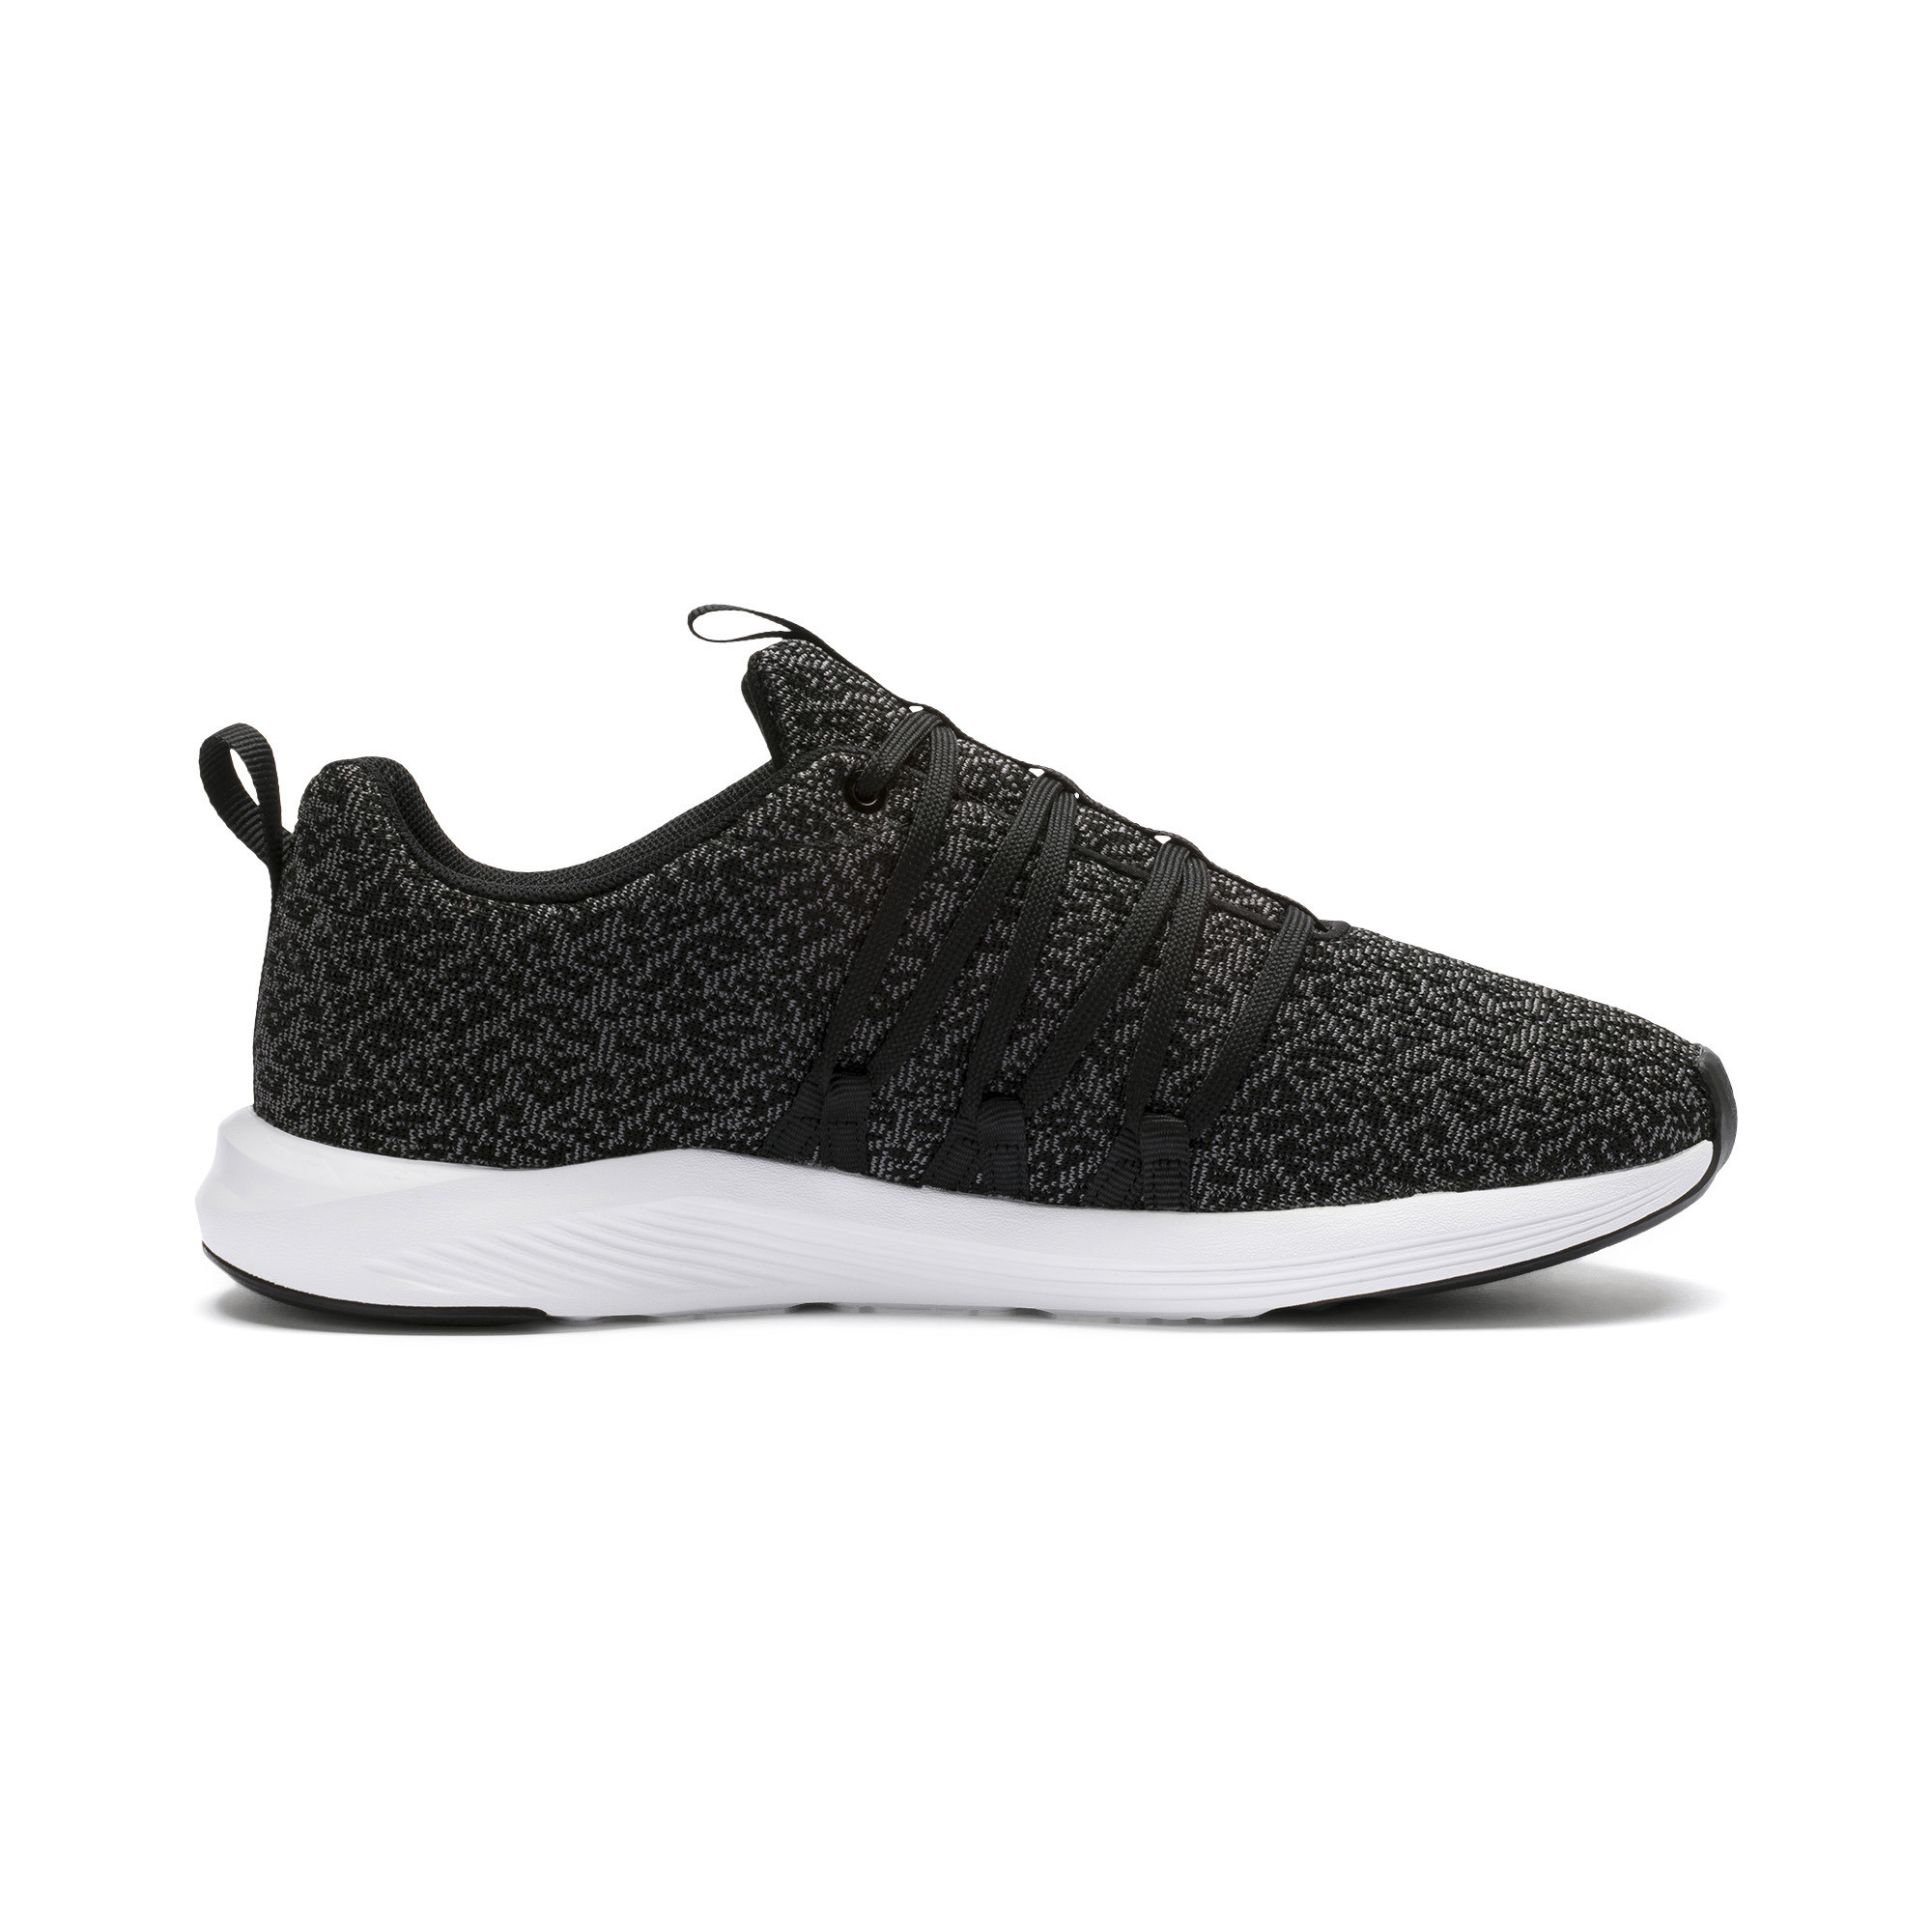 PUMA-Prowl-Alt-Knit-Women-039-s-Training-Shoes-Women-Shoe-Training thumbnail 18